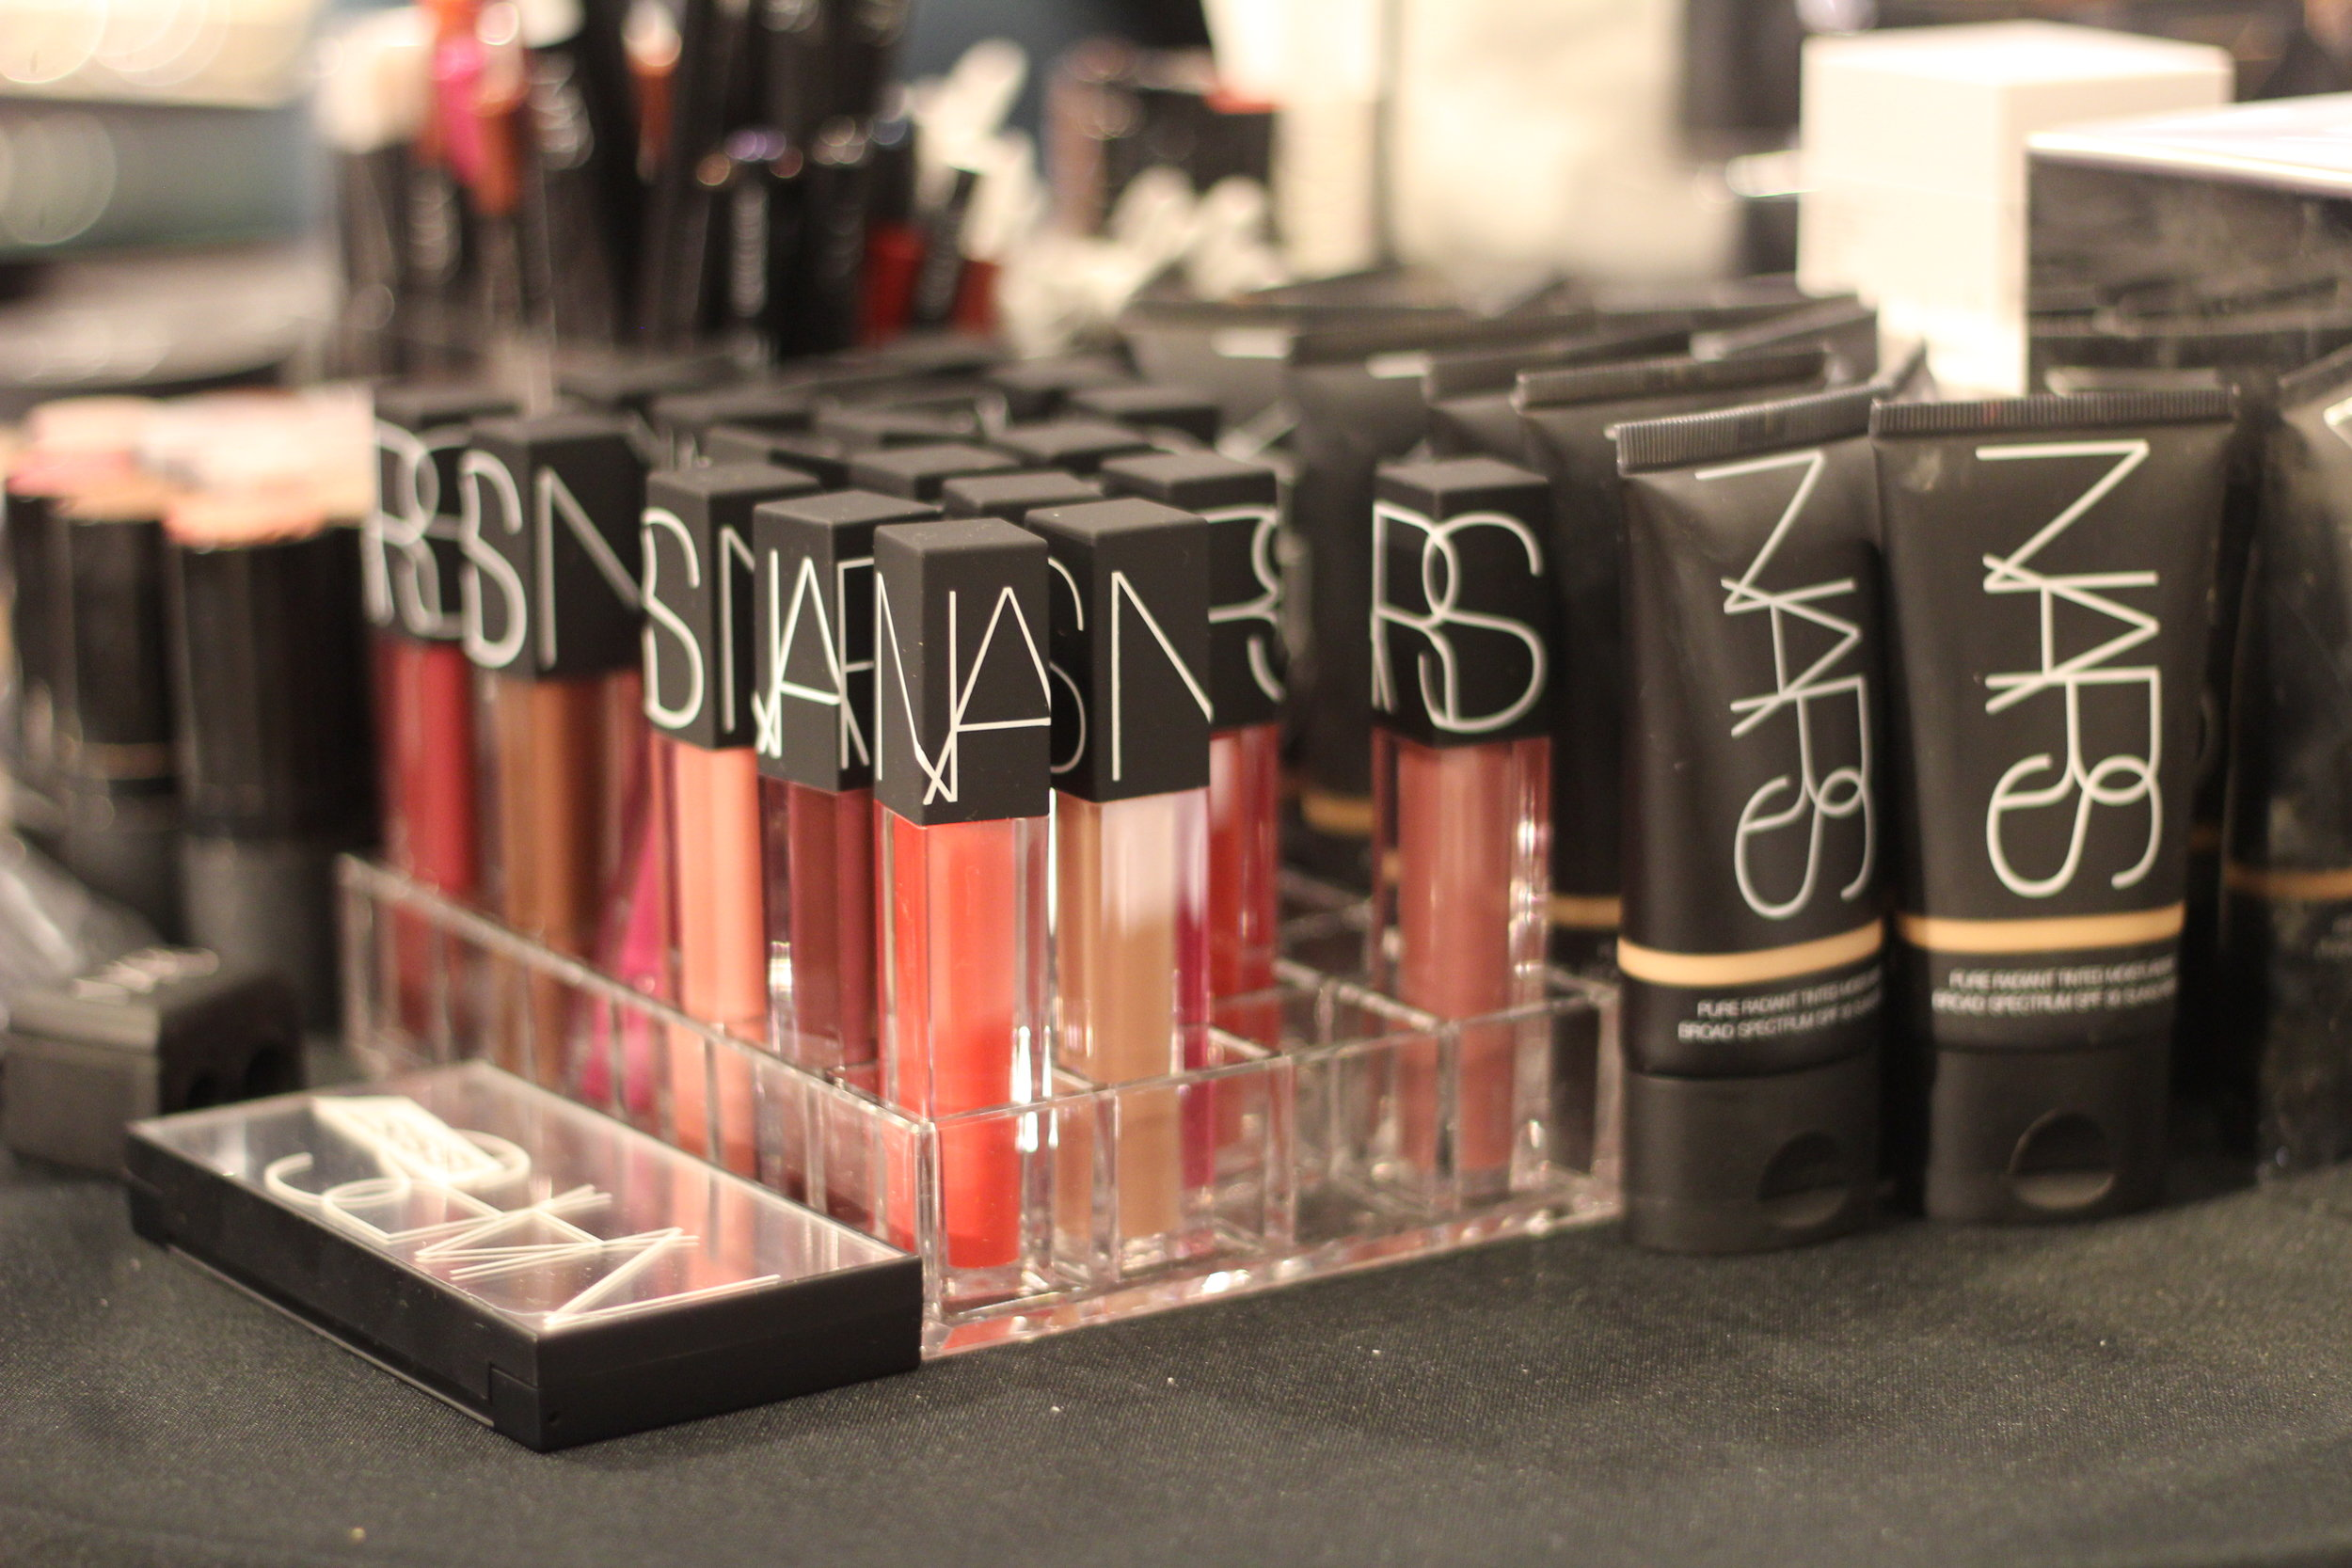 NARS at one of the express makeover booths after the Nordstrom Beauty Trend Show at NorthPark Center.